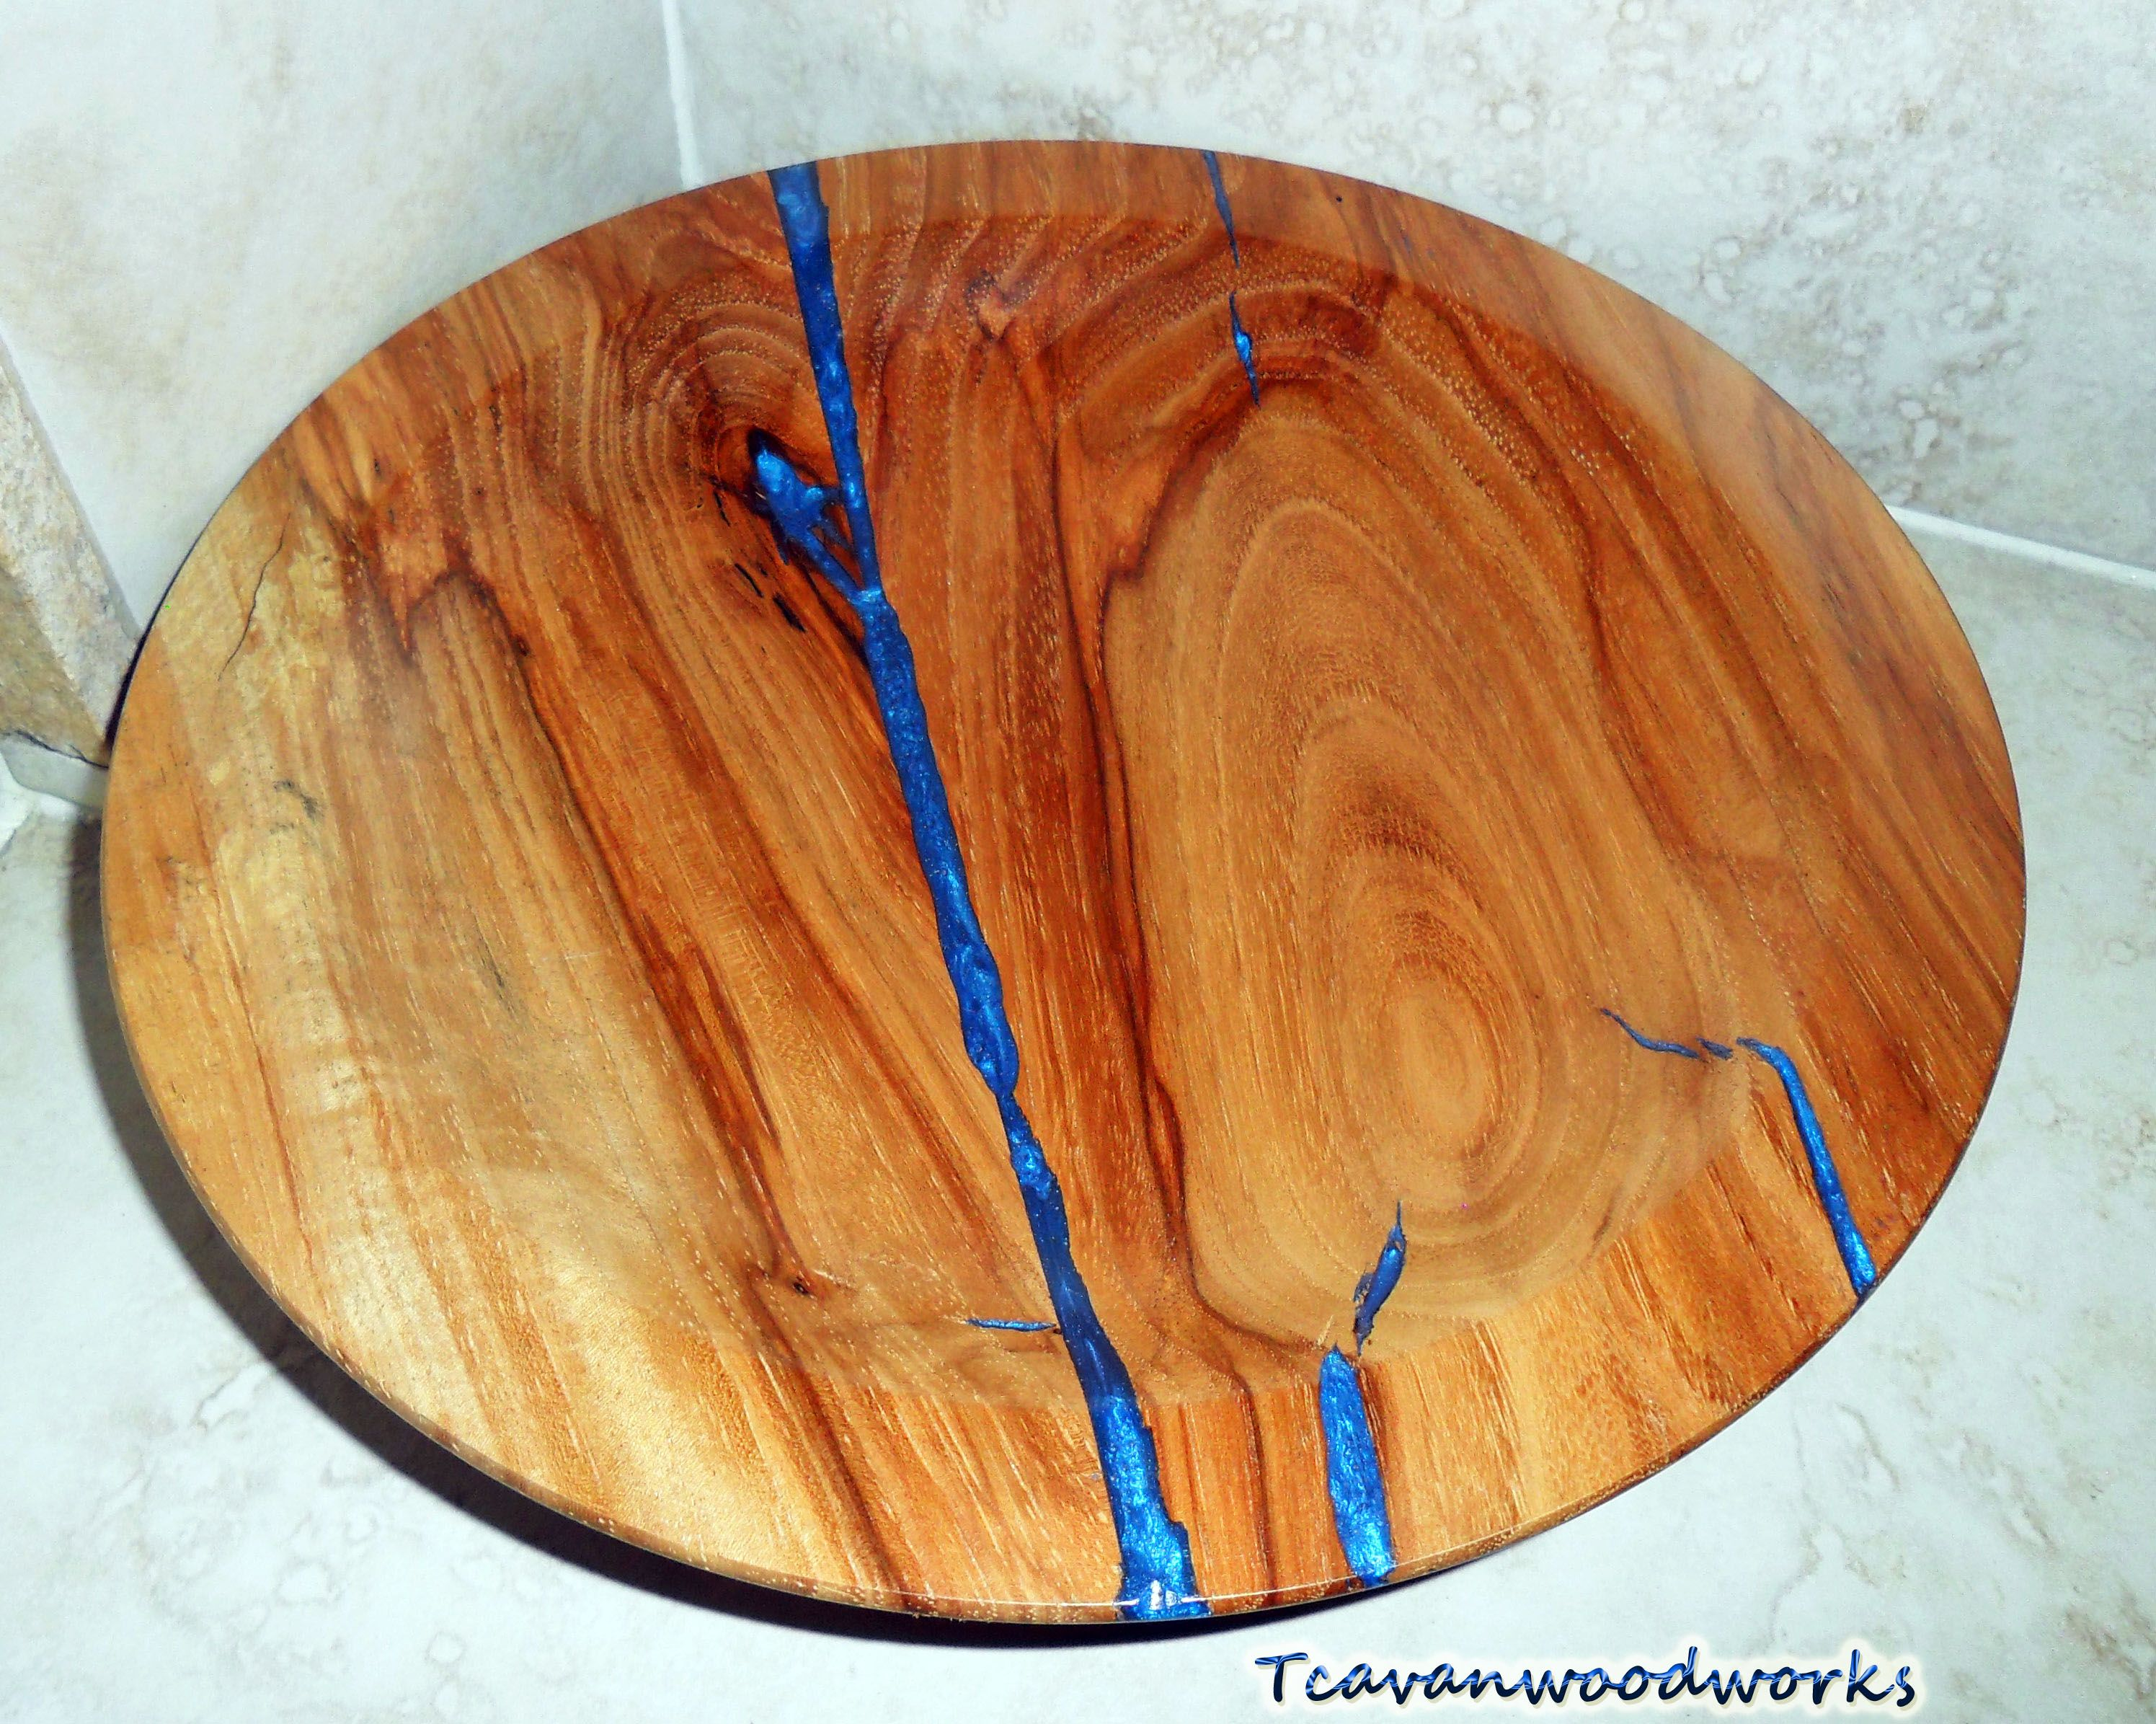 pecan wood bowl with electric blue epoxy resin inlay | Wood ... for Epoxy Resin Wood Art  570bof